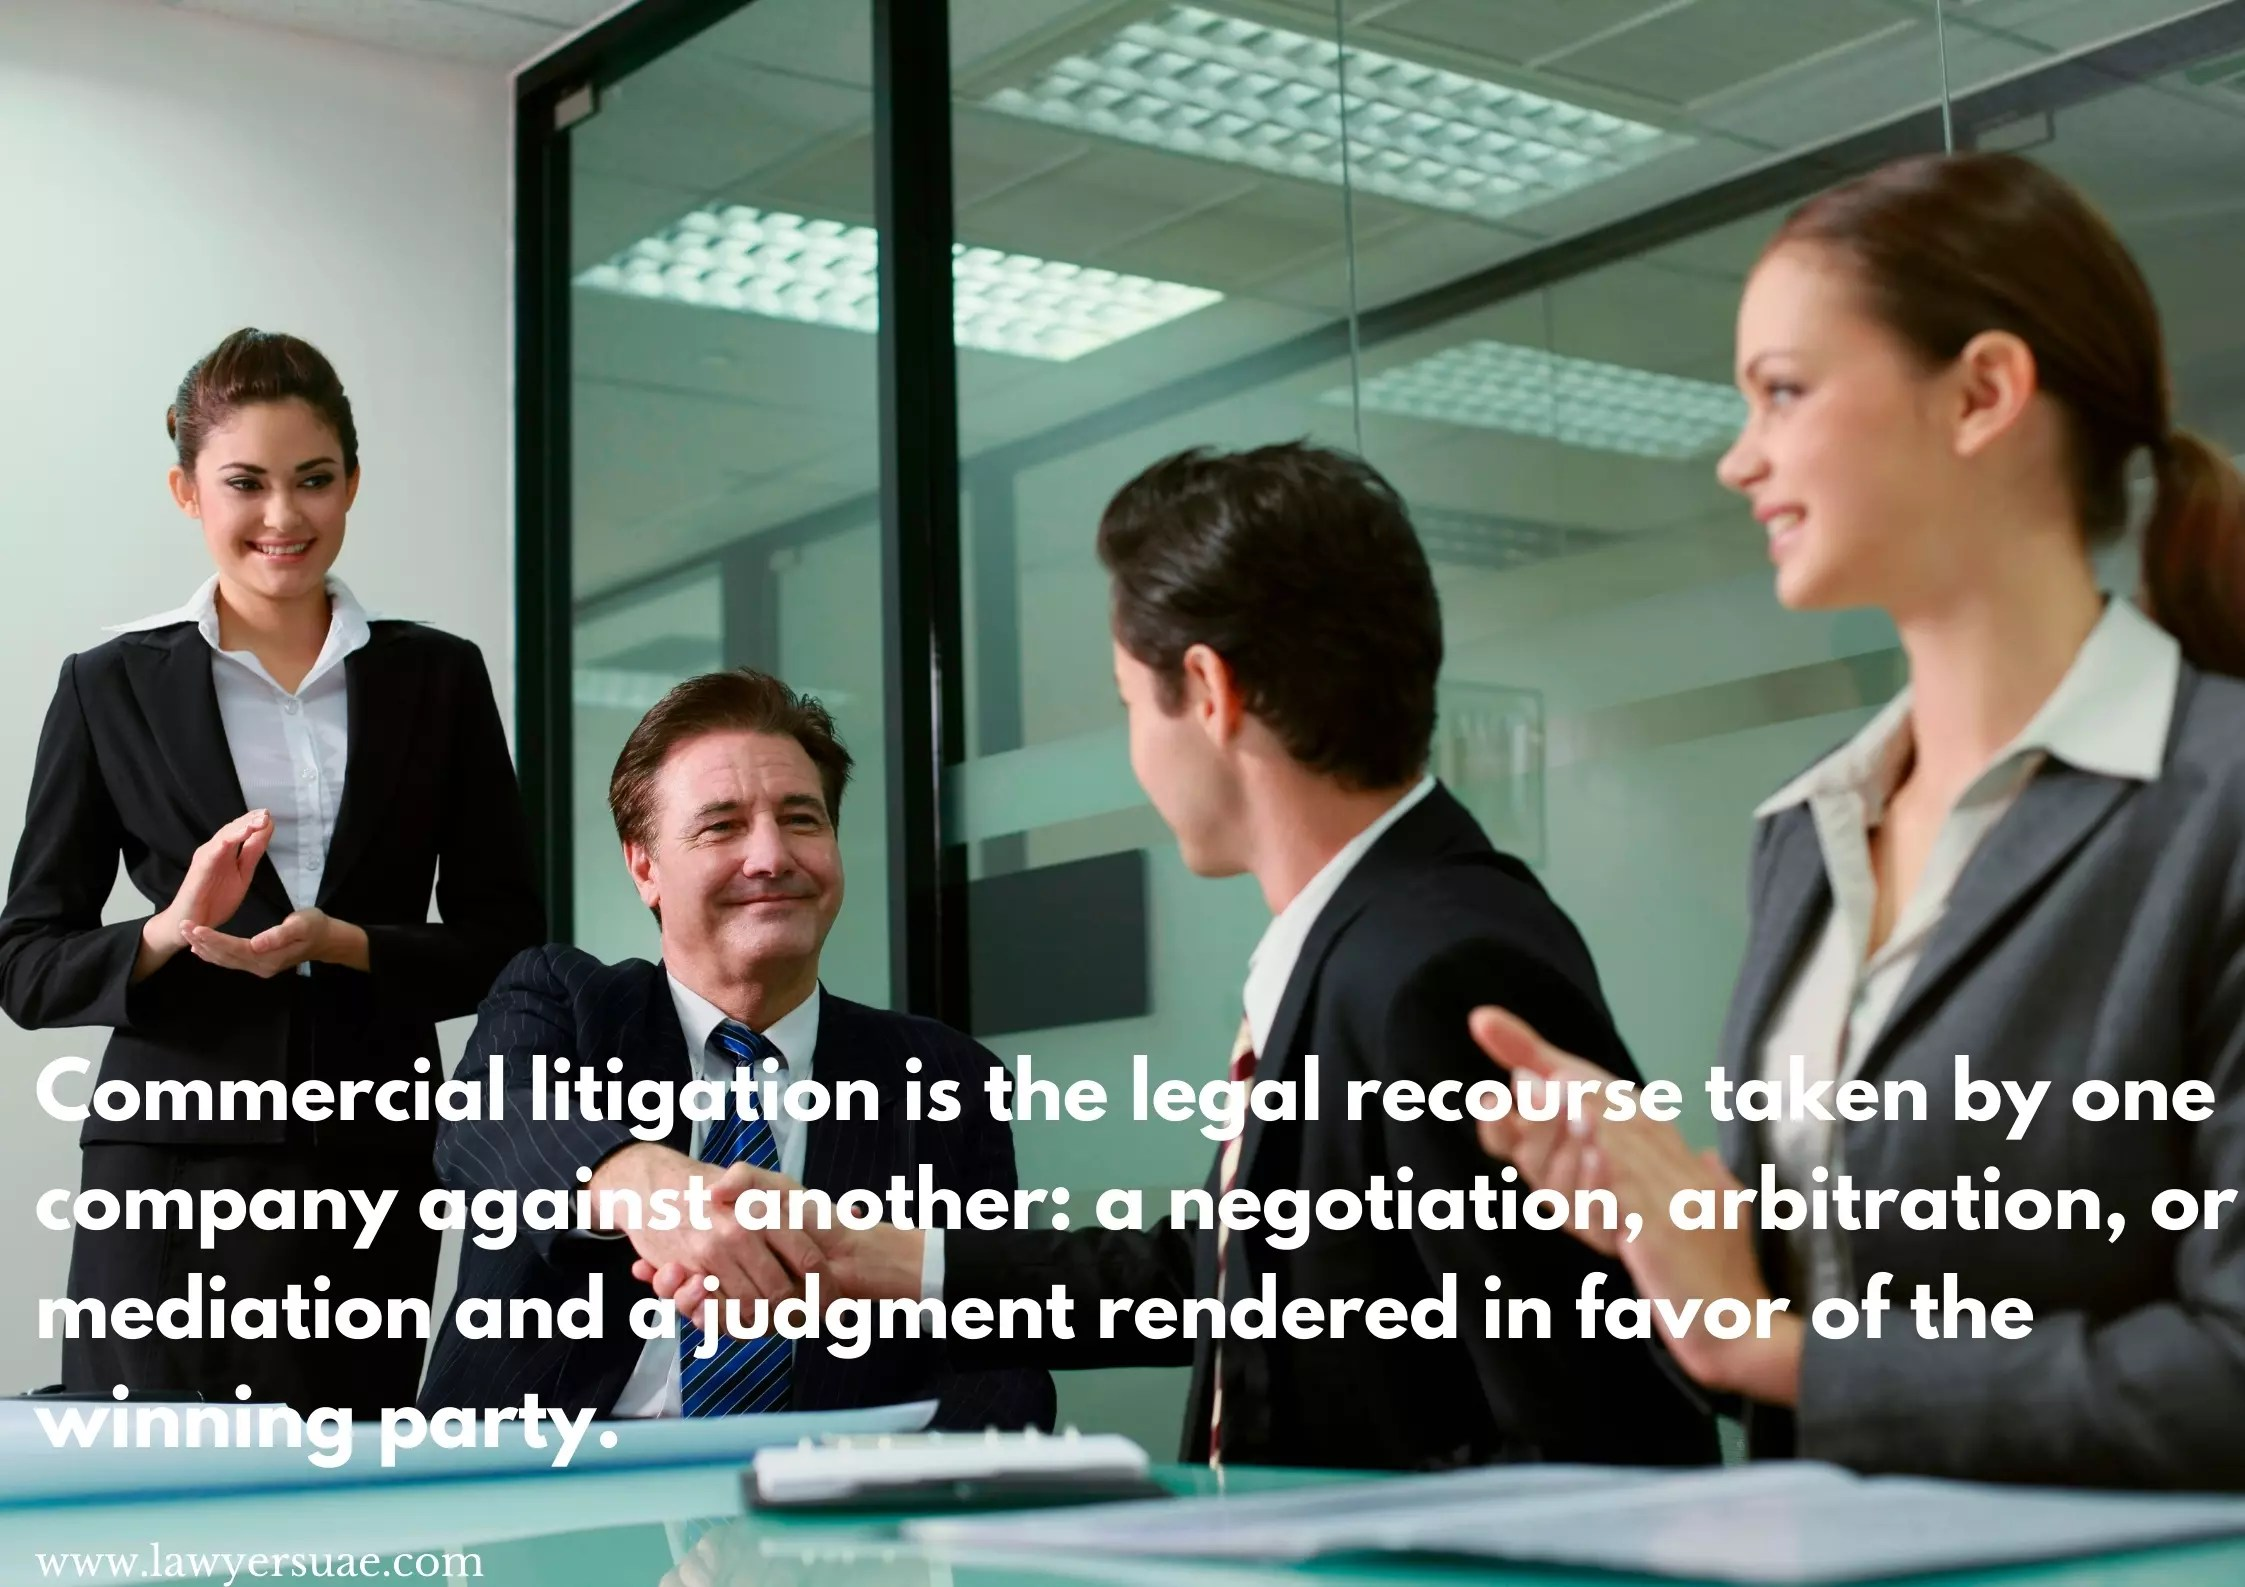 Top 6 ways to settle a commercial litigation